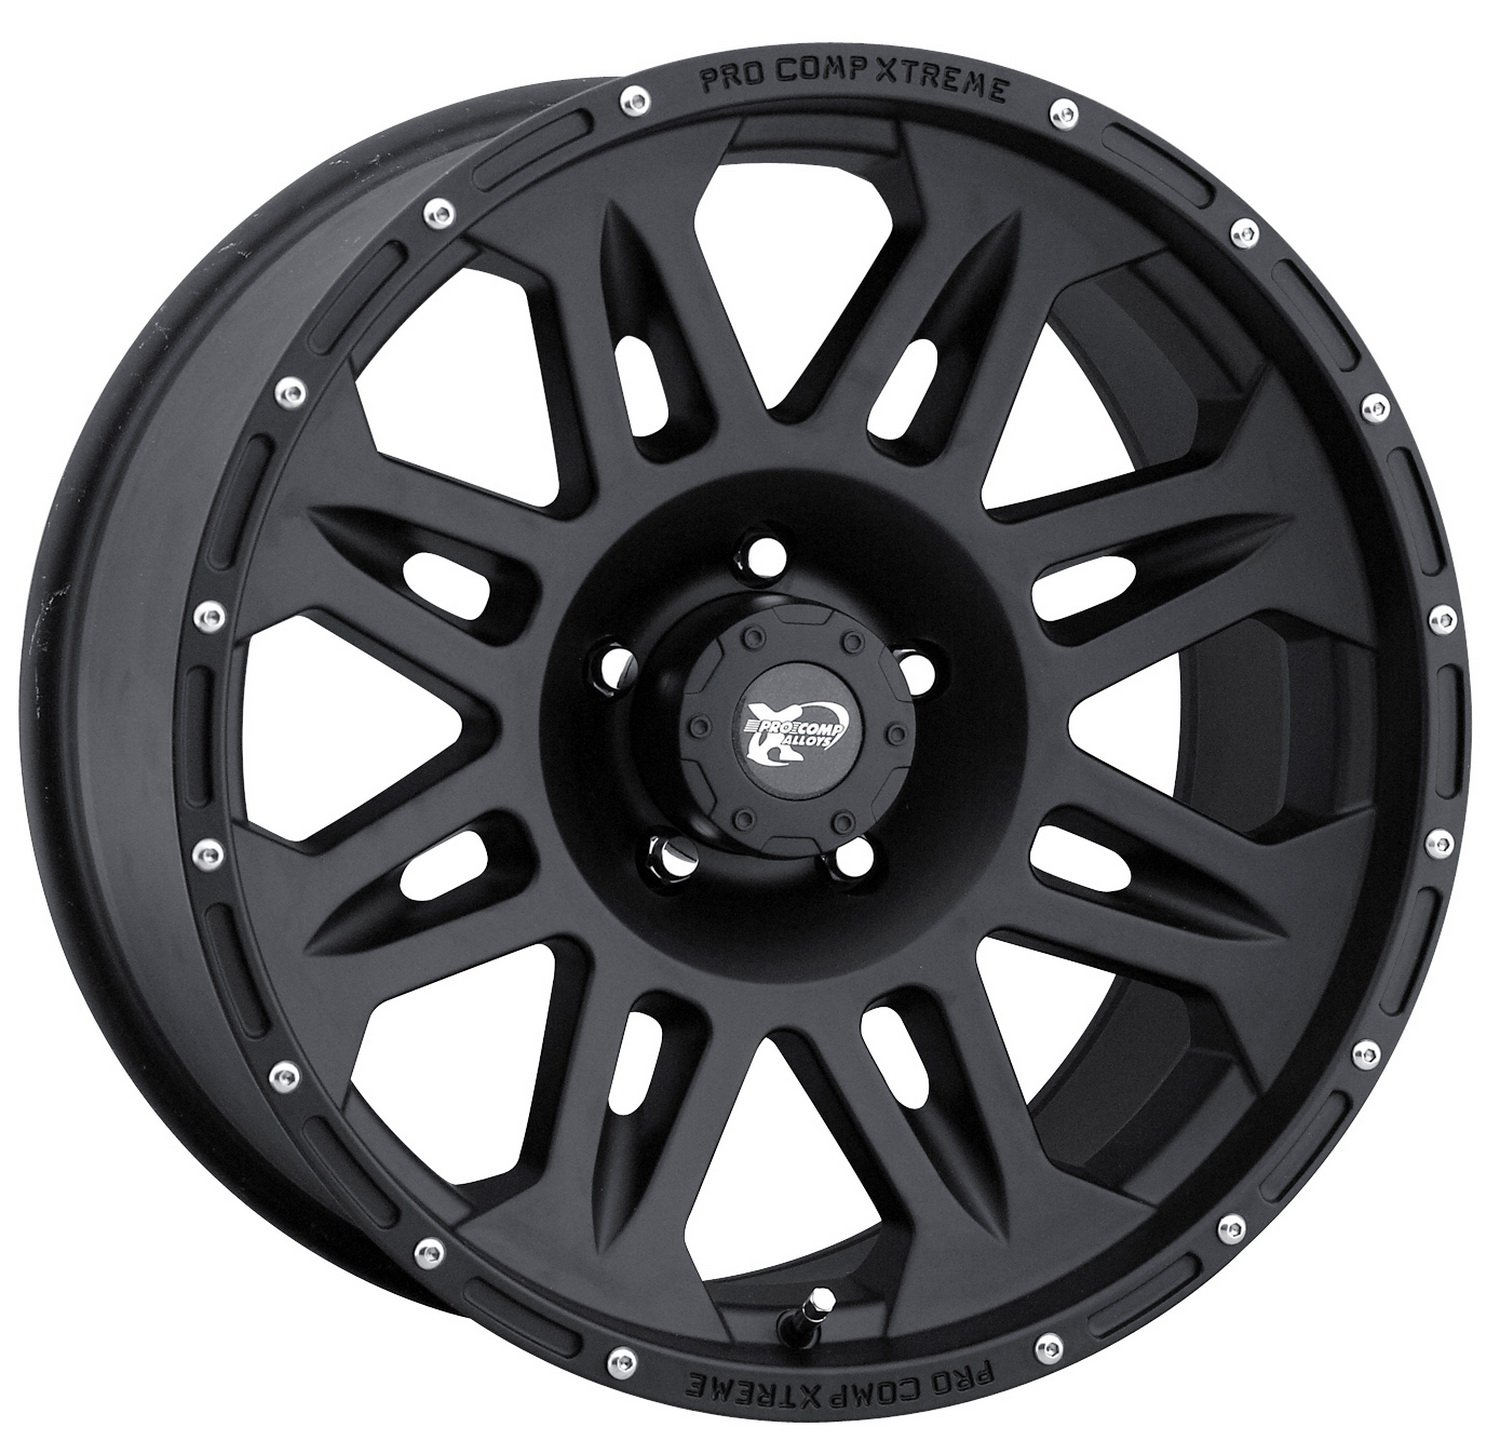 Pro Comp Alloys Series 05 Wheel with Flat Black Finish (17x8''/5x127mm)